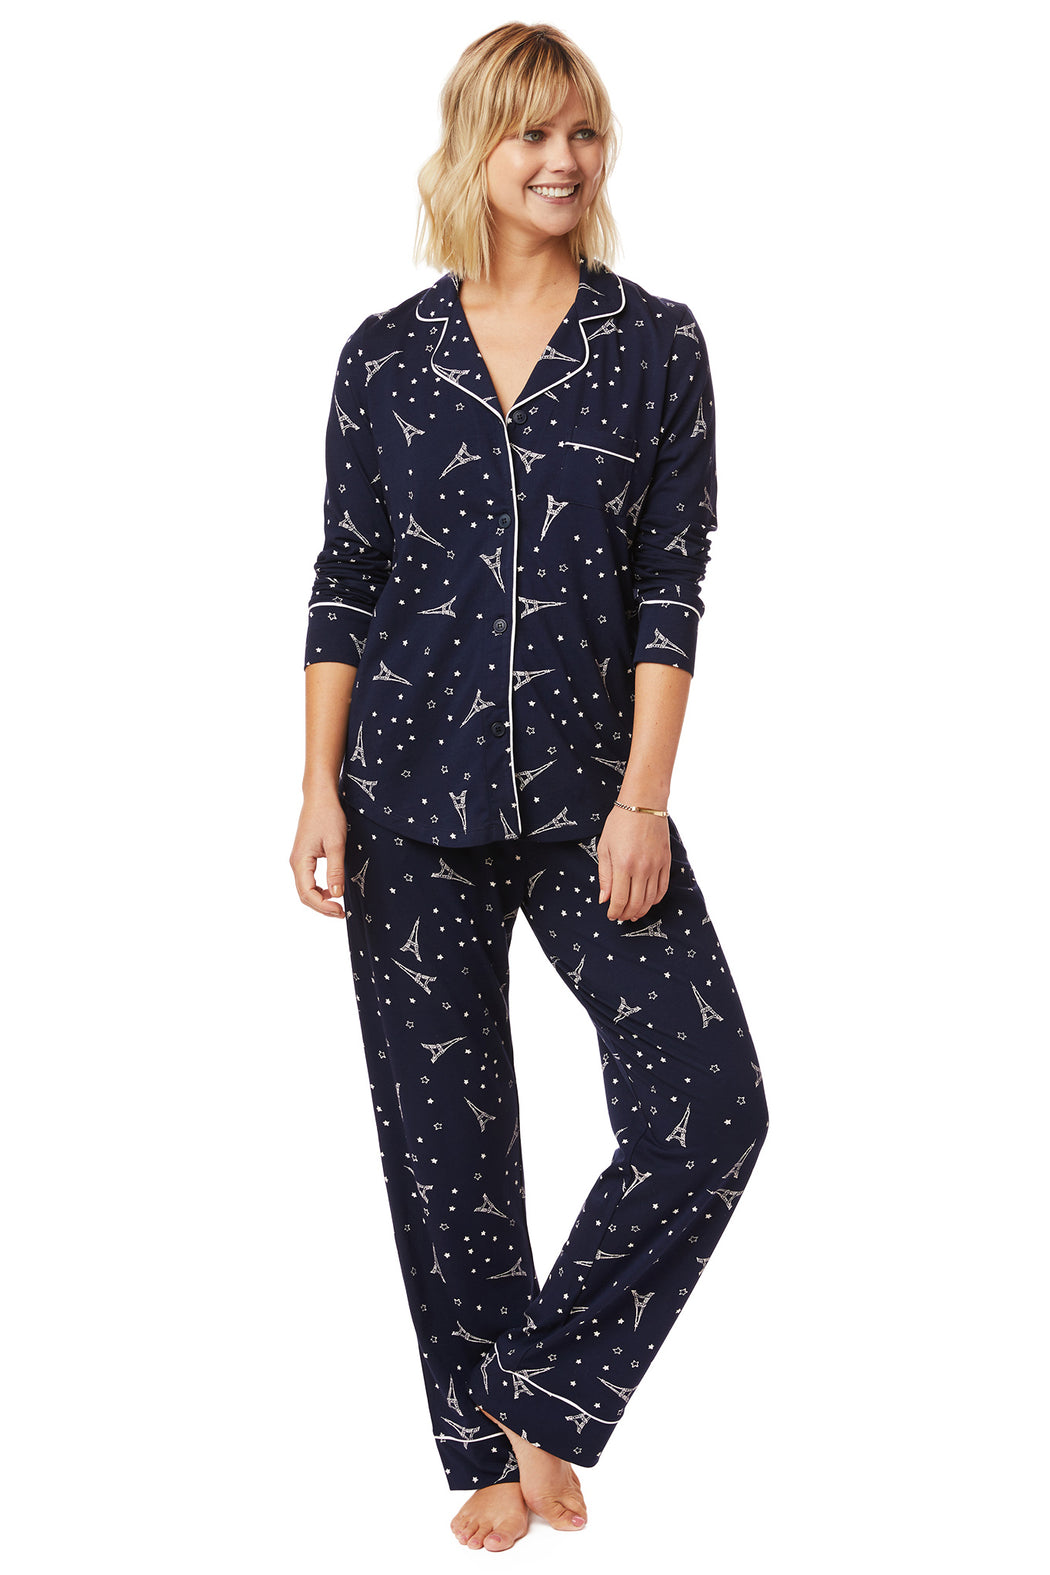 The-Cats-Pajamas-Etoile-Pima-Knit-Pajama-Set-Navy-White